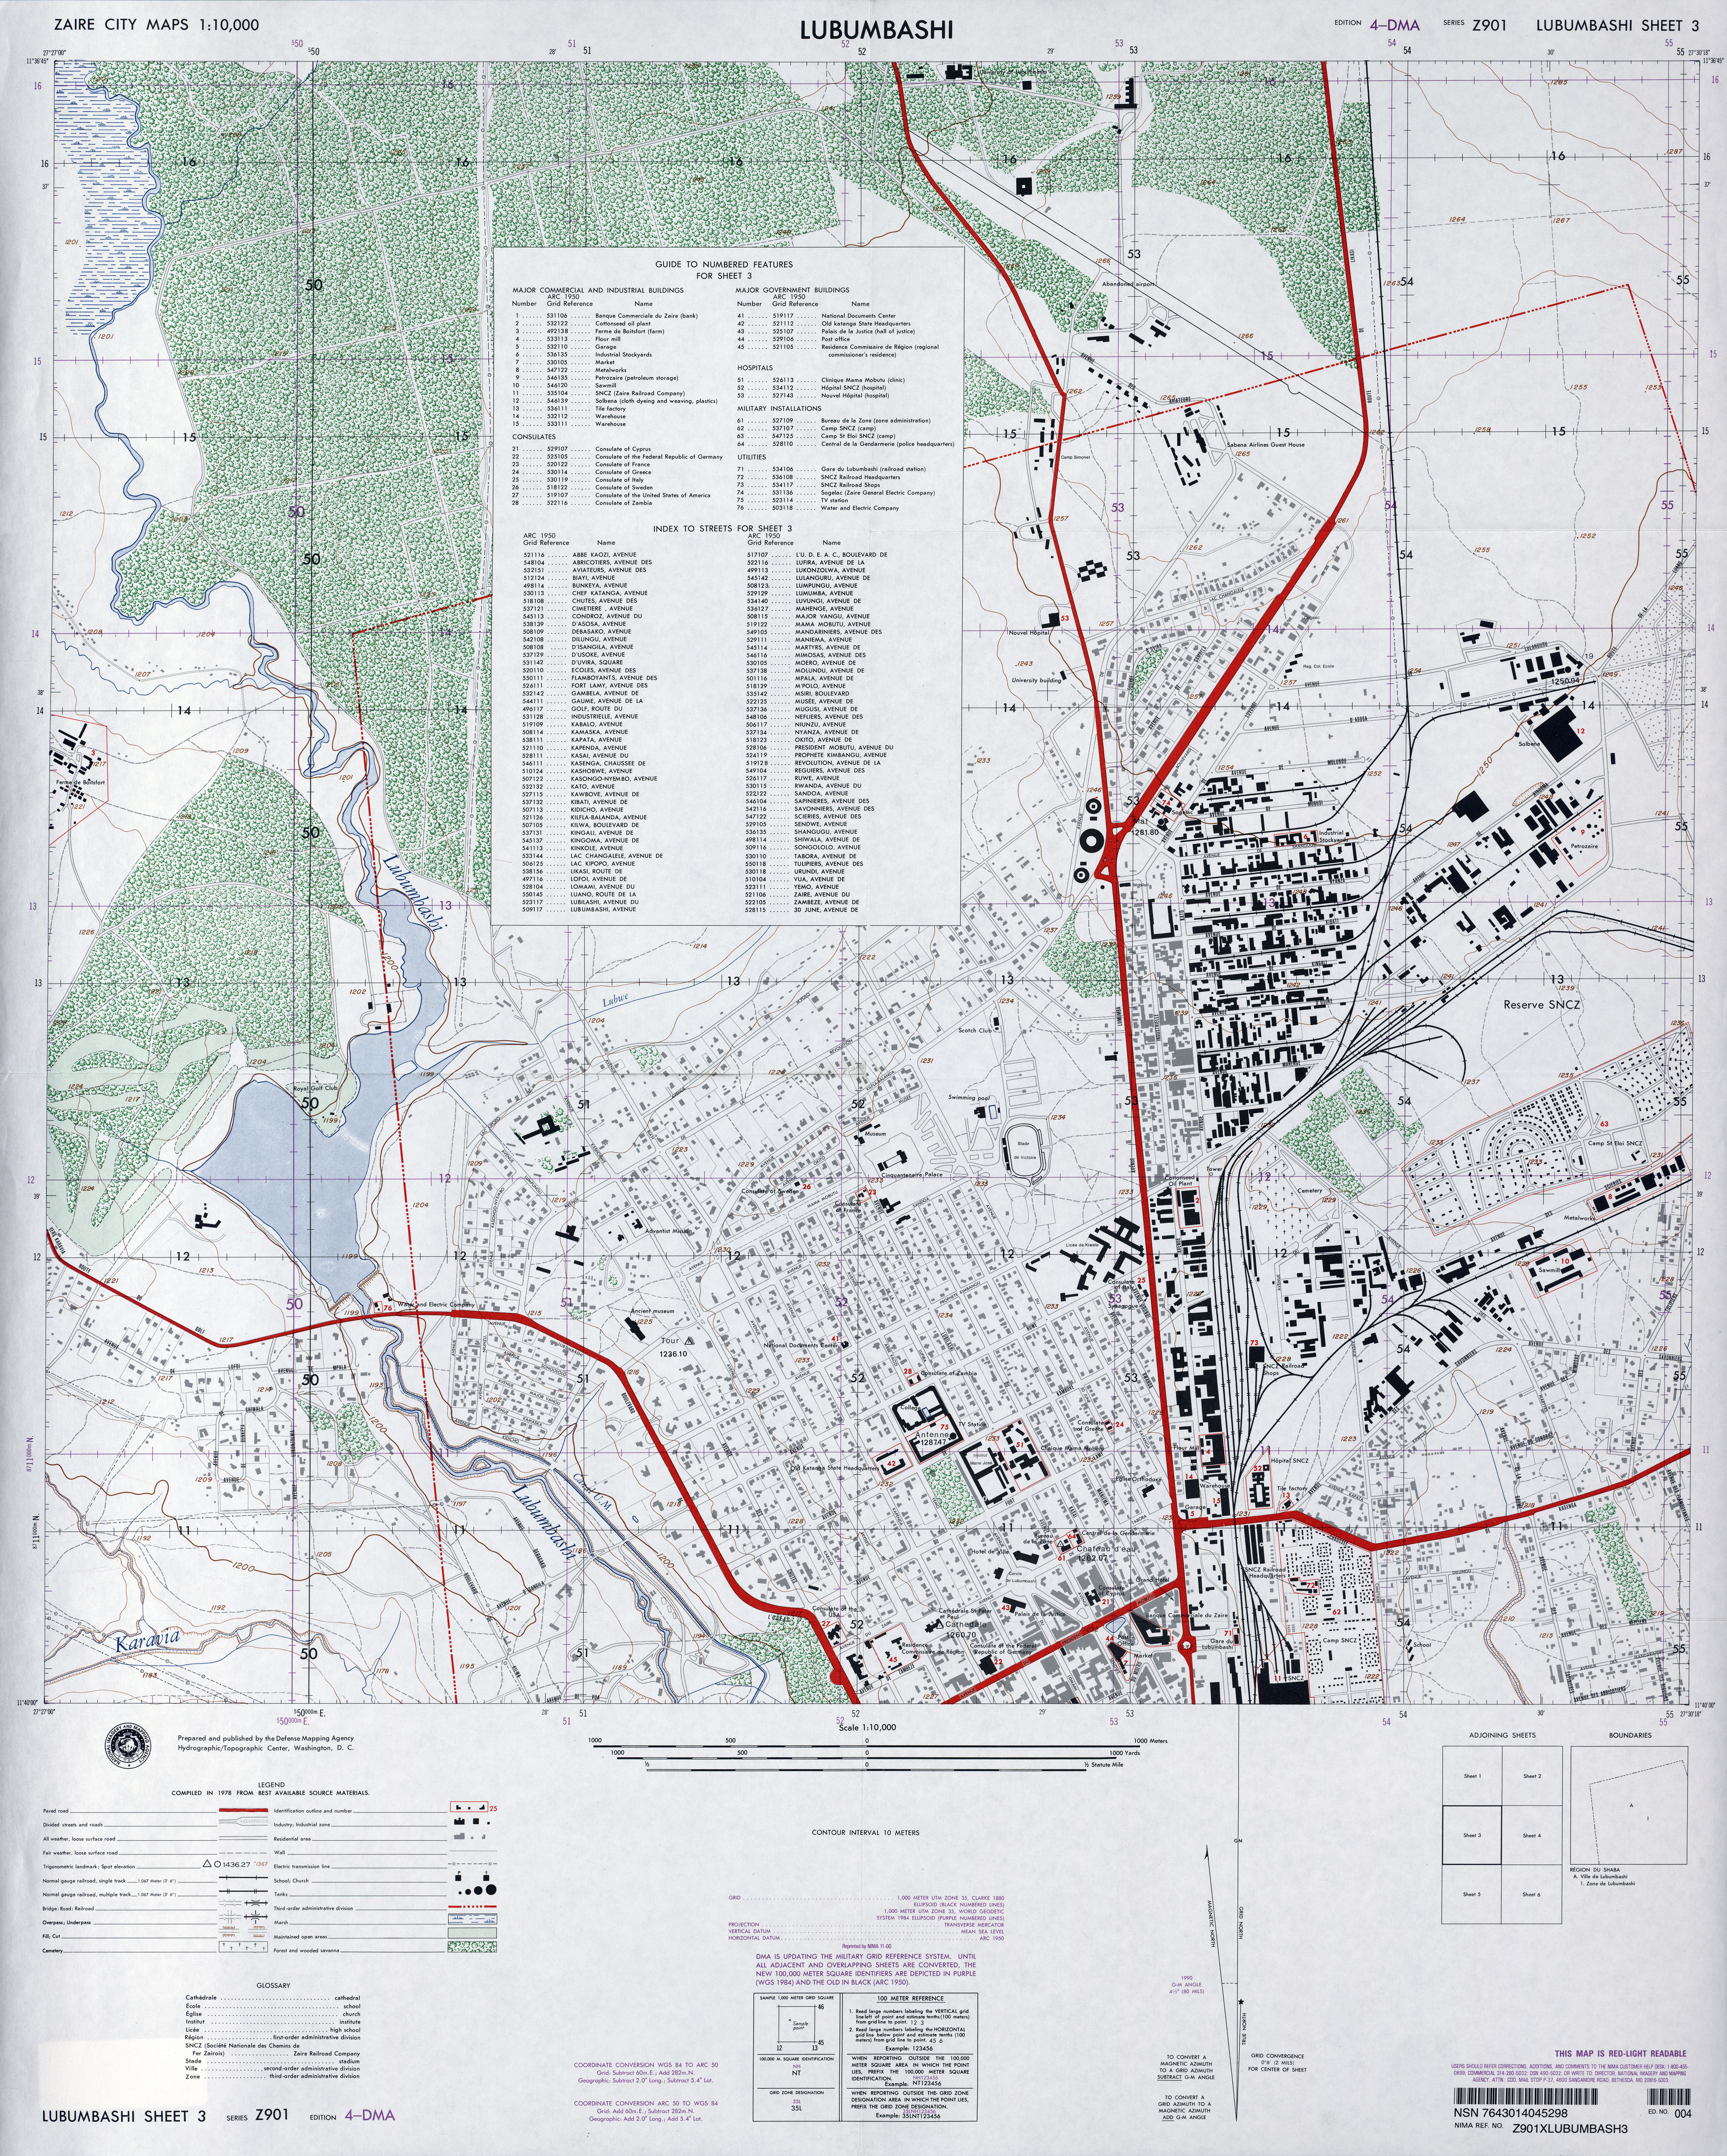 1978 University Of Texas Libraries Author U S Defense Mapping Agency City Map Of Lubashi Congo Democratic Republic